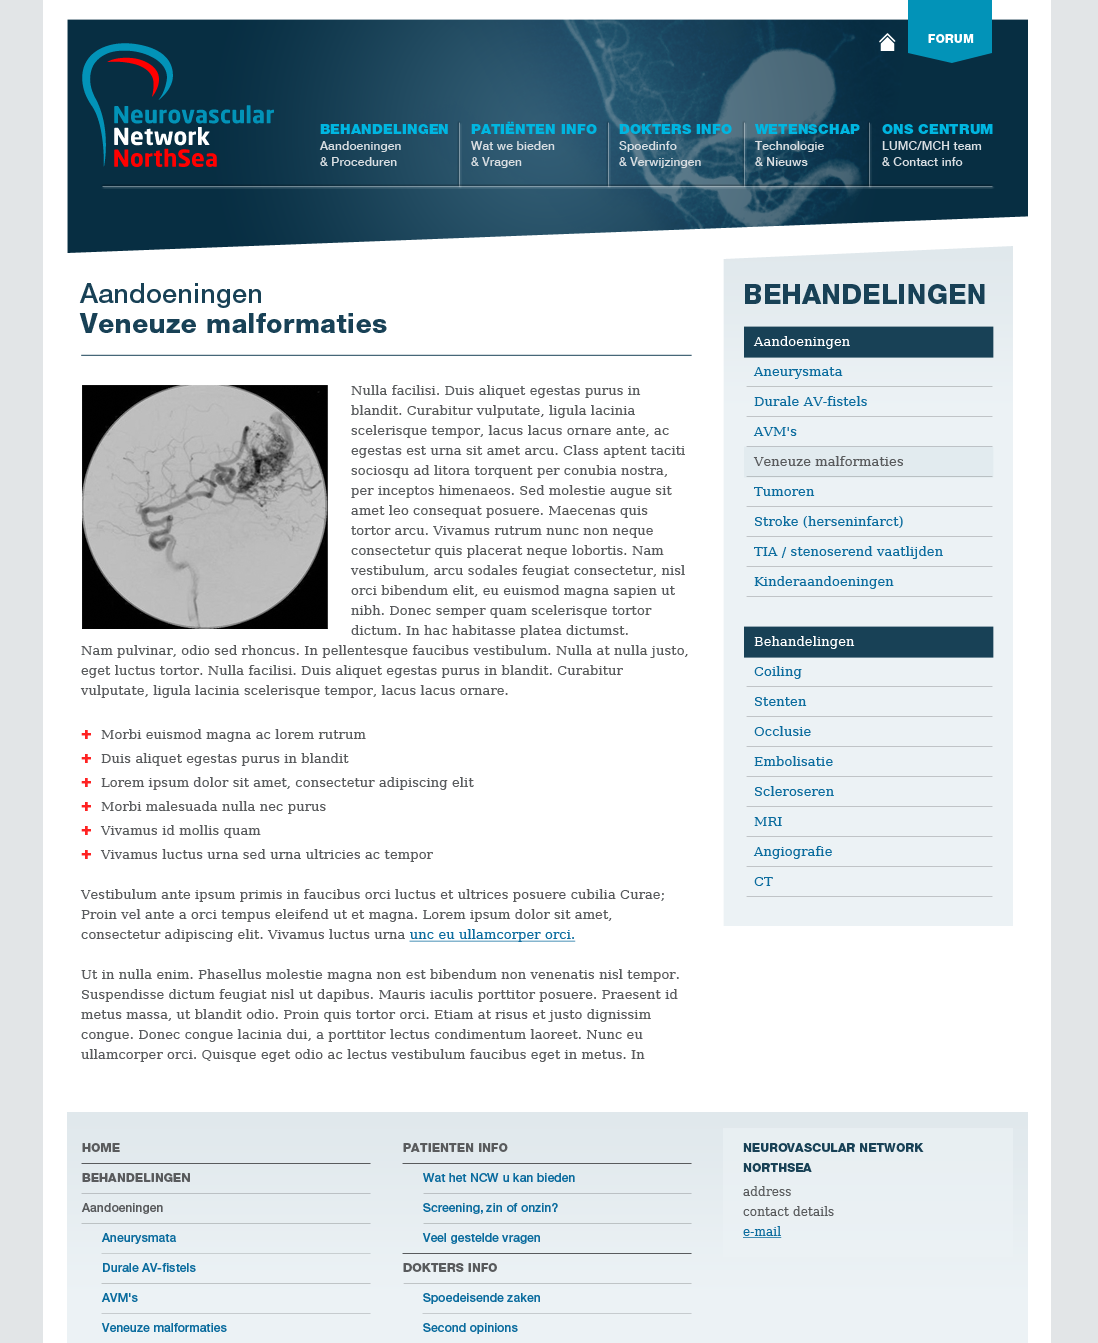 Neurovascular Network Northsea, NL